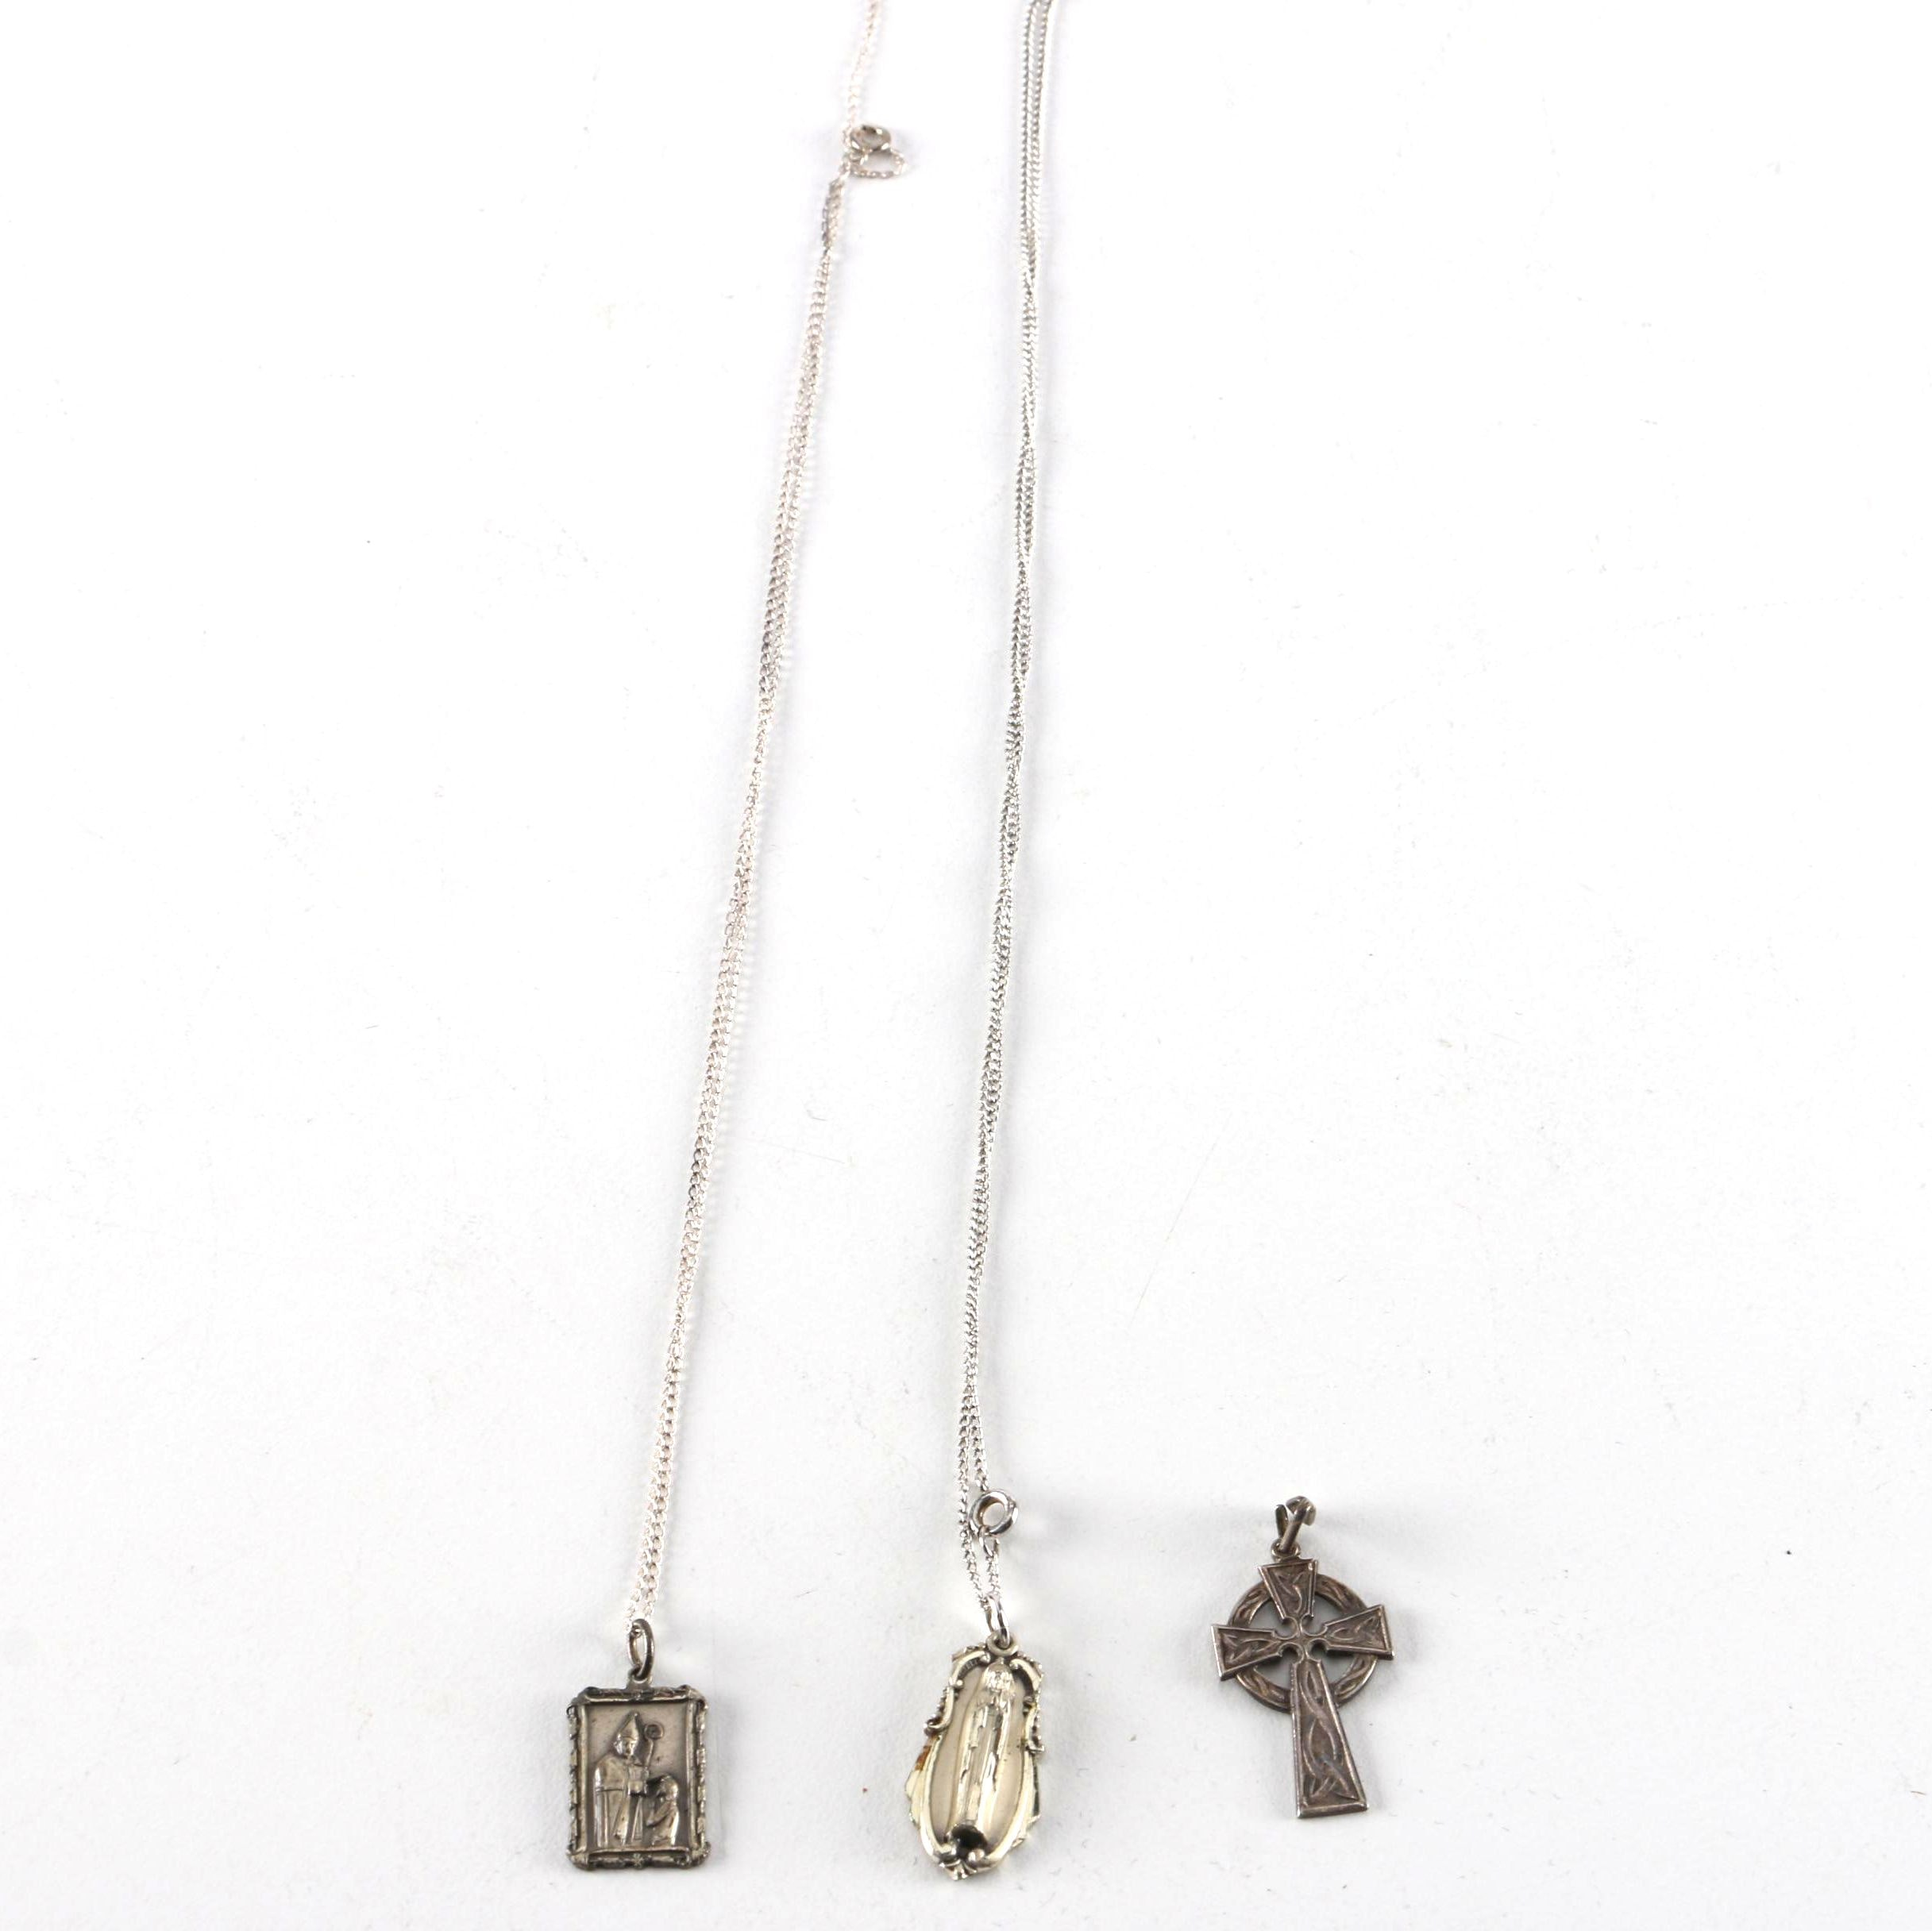 Necklaces Including Sterling Silver and Religious Pendants